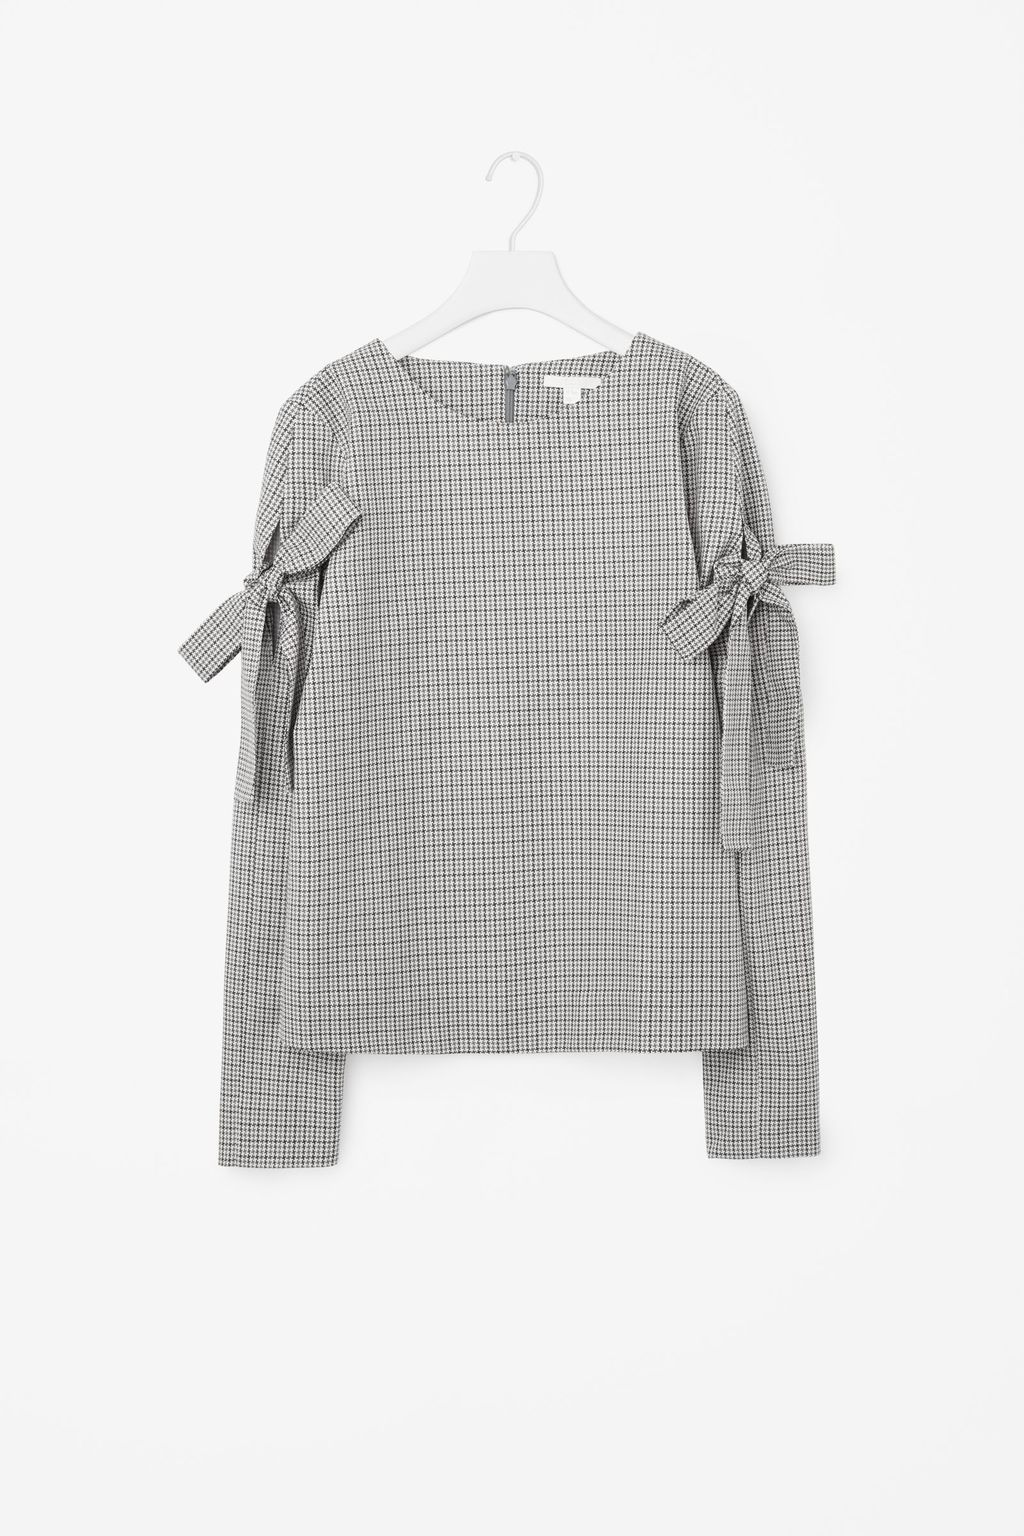 Houndstooth Check Top - neckline: round neck; pattern: checked/gingham; predominant colour: light grey; occasions: casual, creative work; length: standard; style: top; fibres: cotton - 100%; fit: straight cut; sleeve length: long sleeve; sleeve style: standard; pattern type: fabric; pattern size: standard; texture group: jersey - stretchy/drapey; season: a/w 2016; wardrobe: highlight; trends: statement sleeves